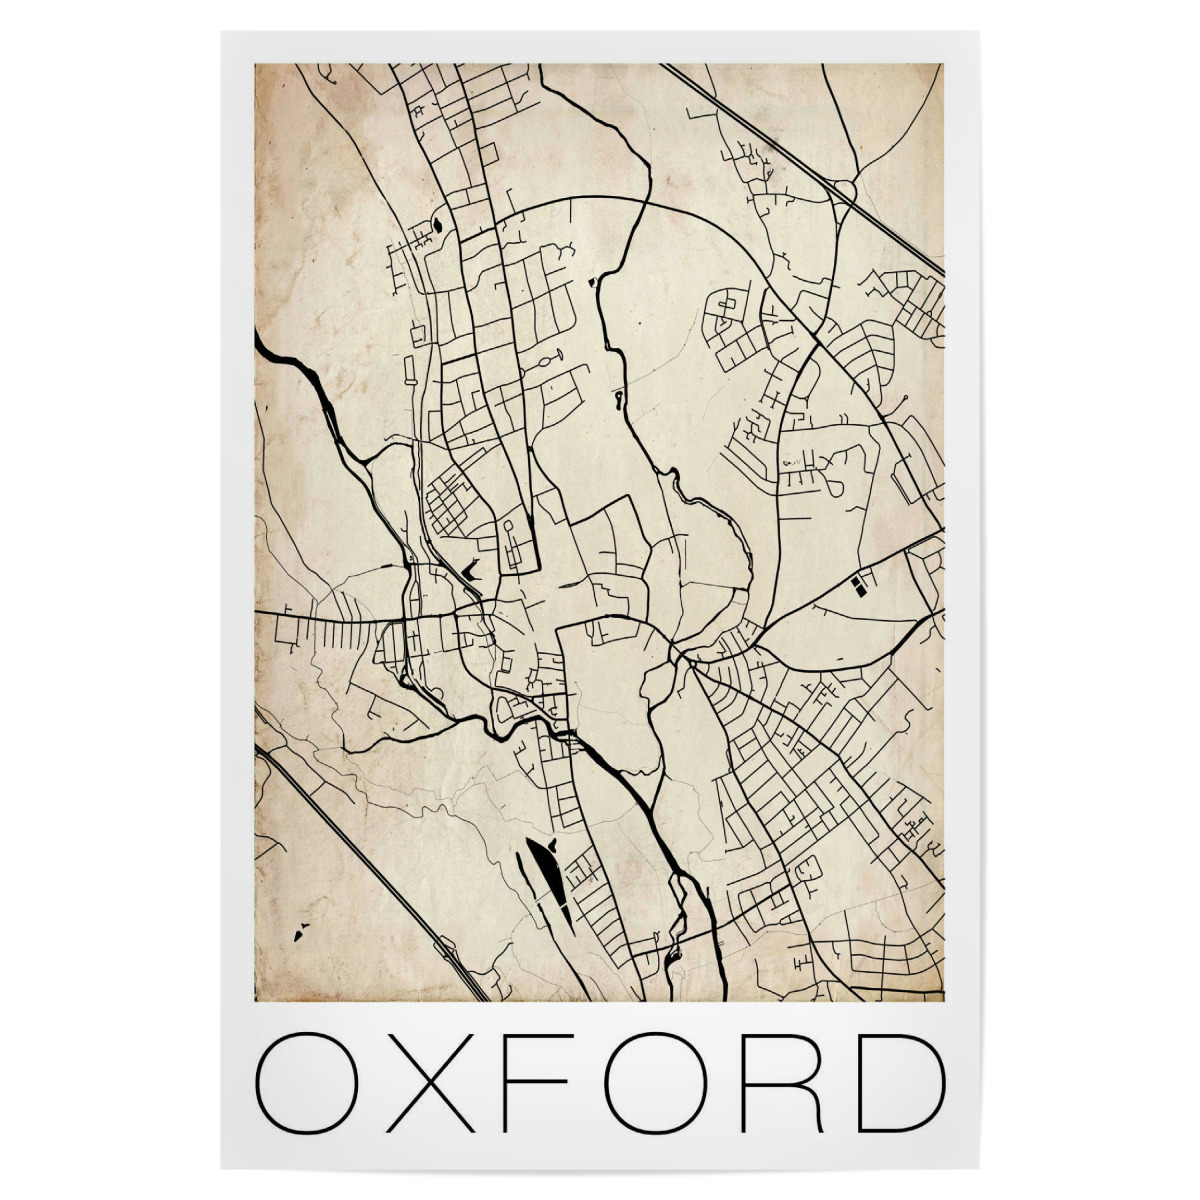 Purchase The Retro Map Of Oxford England As A Poster At Artboxone